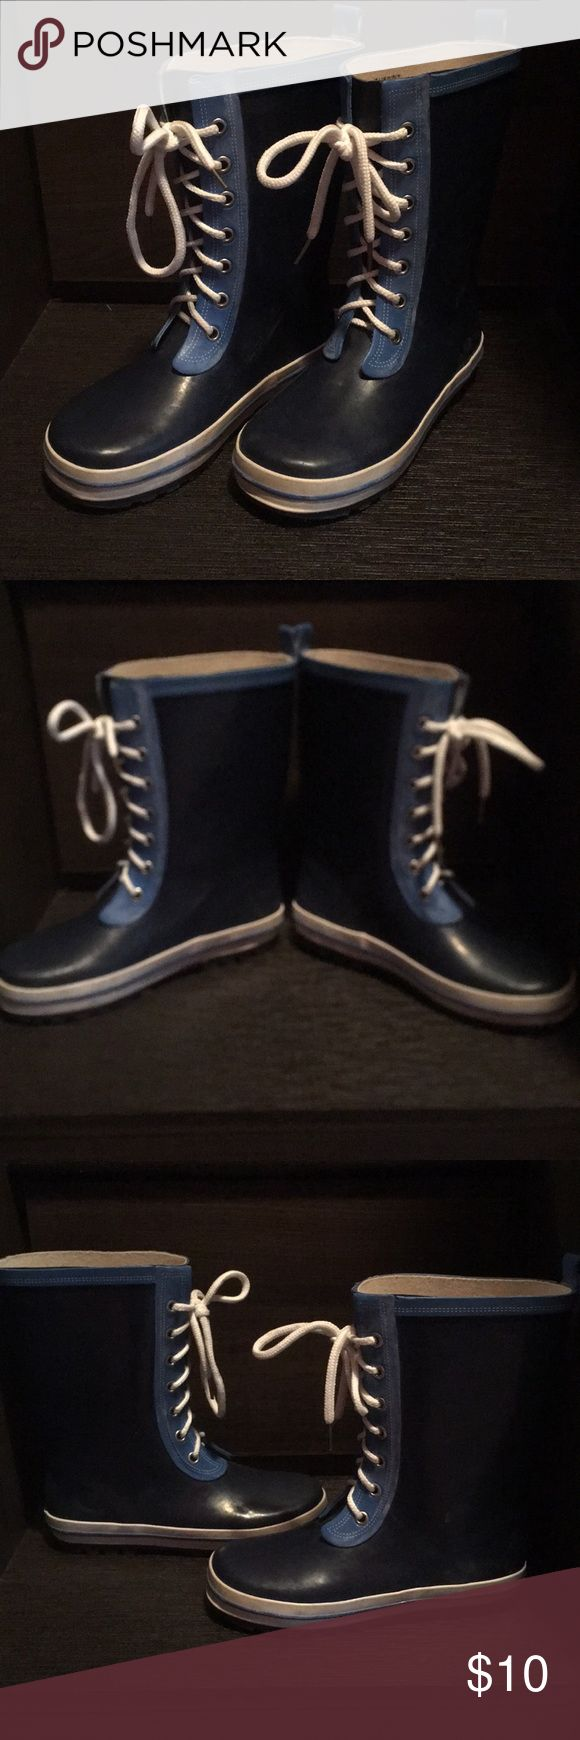 Boys Rain Boots Adorable rain boots worn one season!  Small/minor scuffs as shown in picture but otherwise excellent condition.  Size 1 fabkids Shoes Rain & Snow Boots